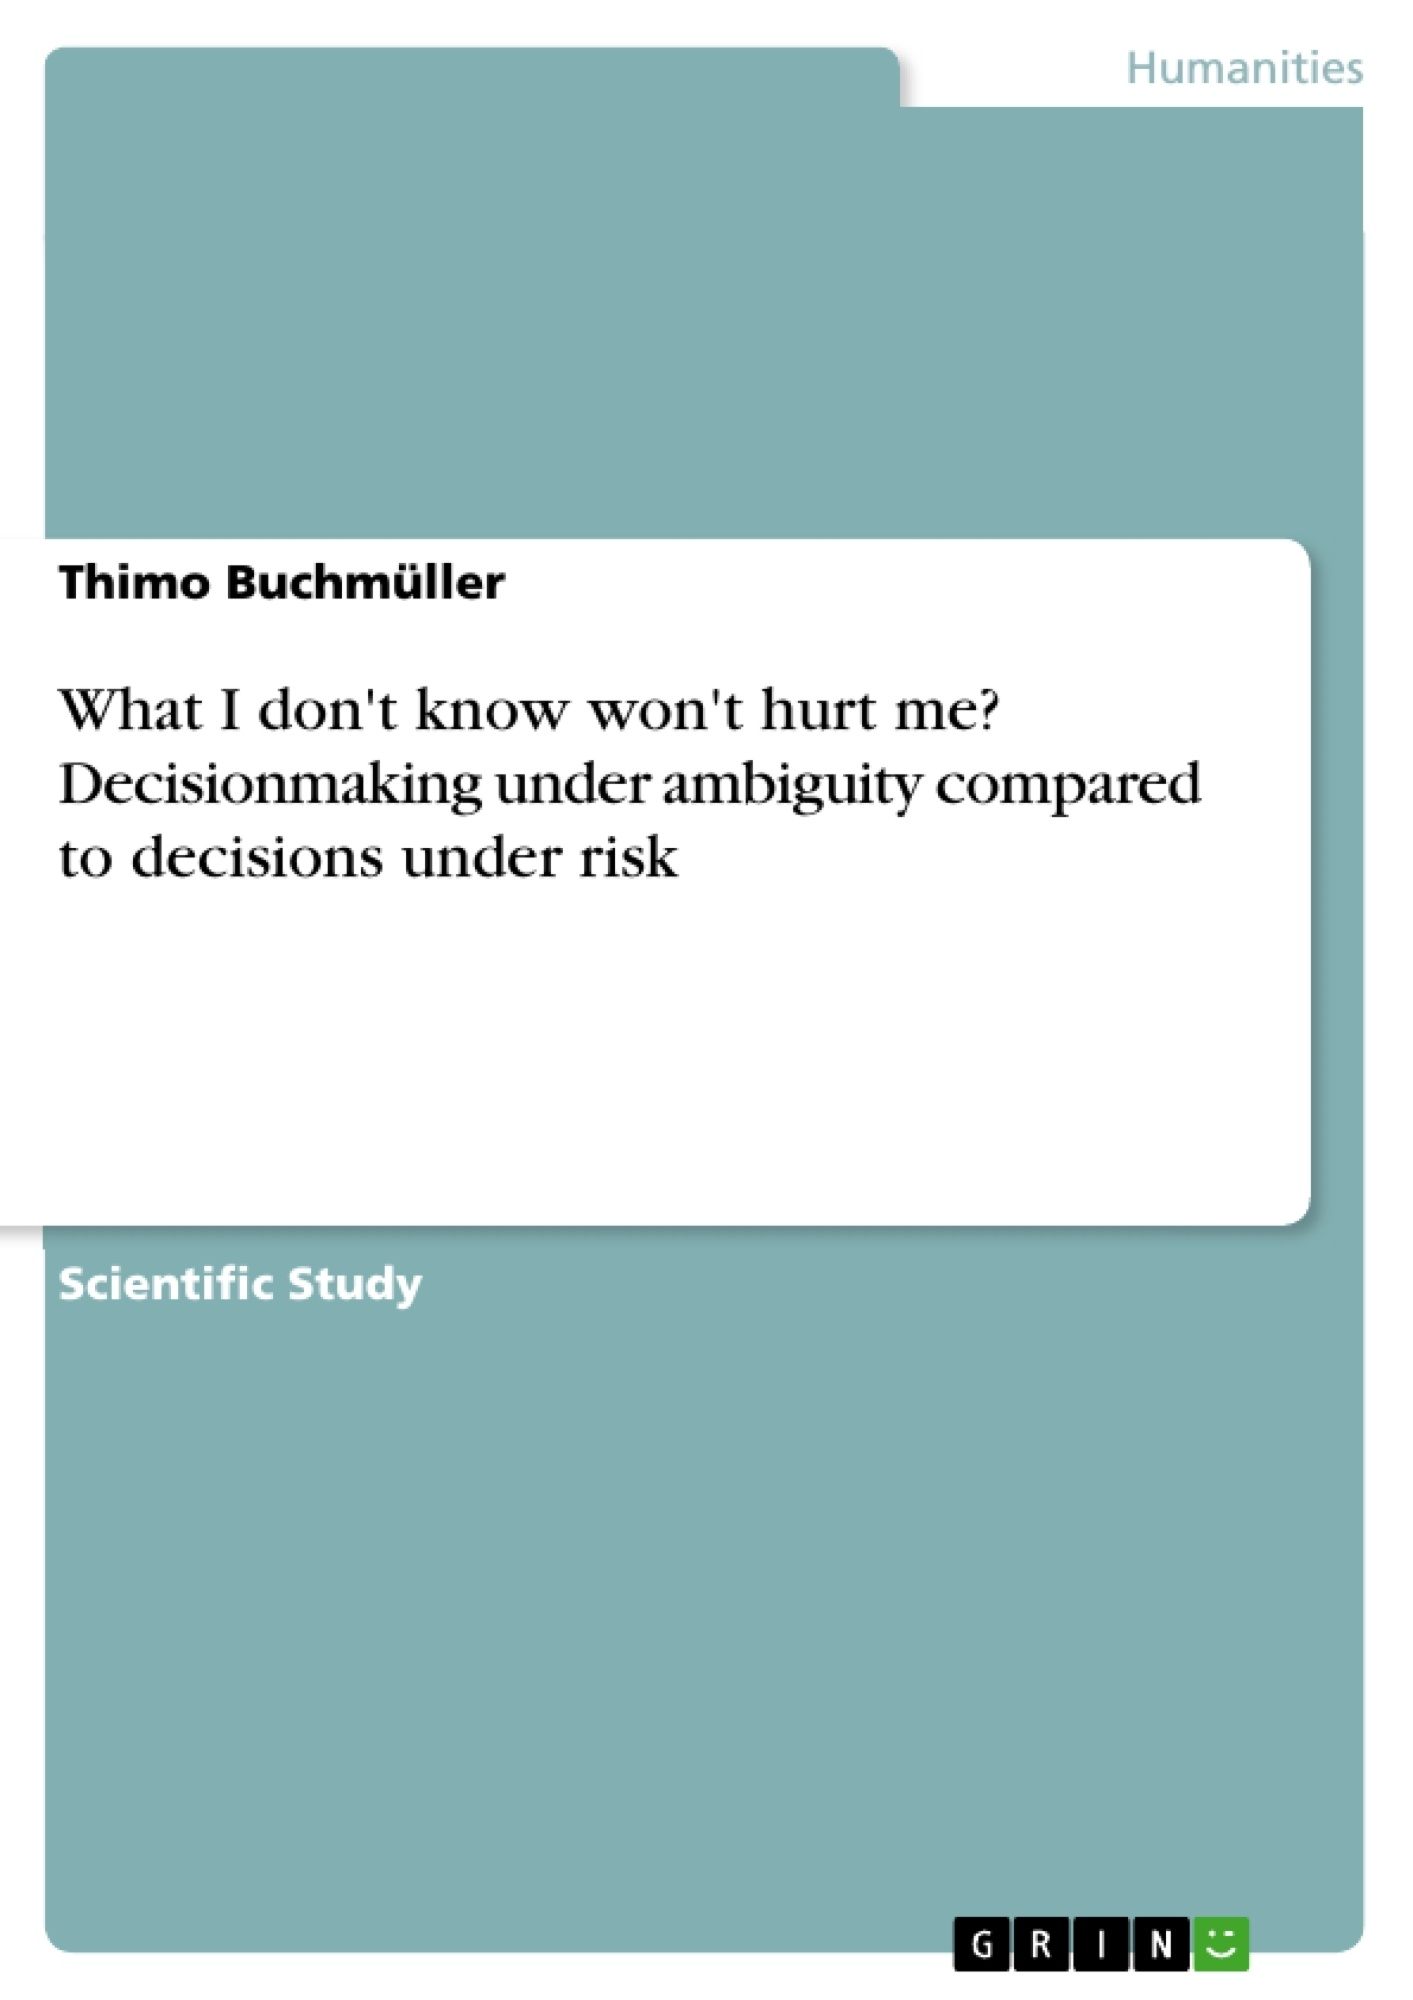 Title: What I don't know won't hurt me? Decisionmaking under ambiguity compared to decisions under risk